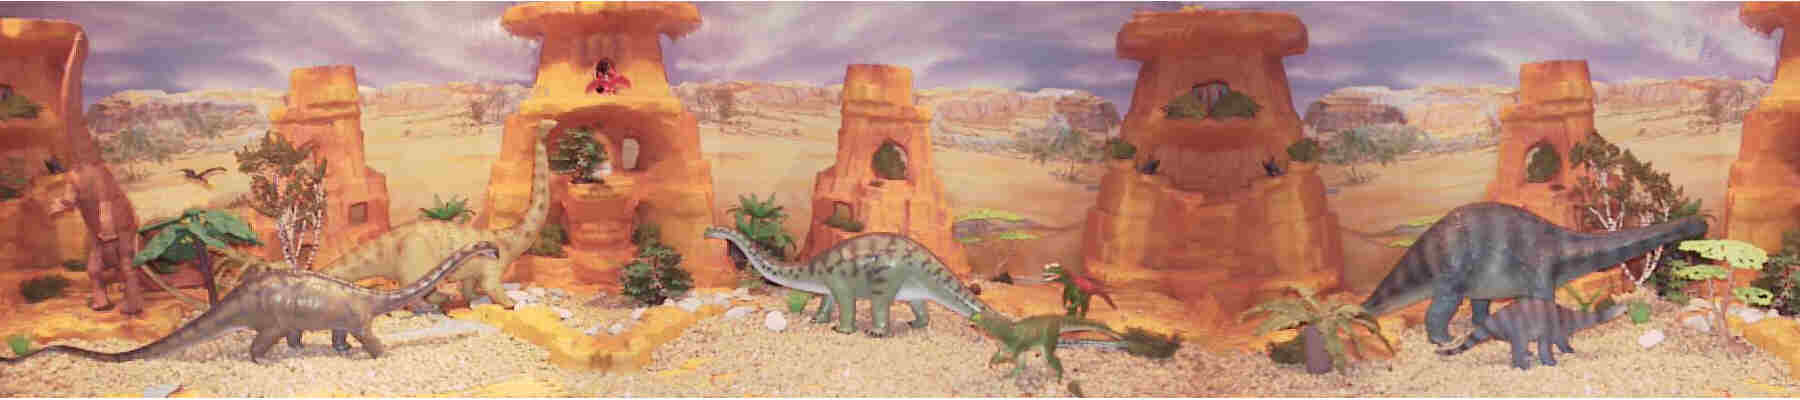 Diplodocus, Battat, Invicta and Safari Carnegie.  Ceratosaurus Battat and a Wild Safari. Schleich adult and baby Apatosaurus